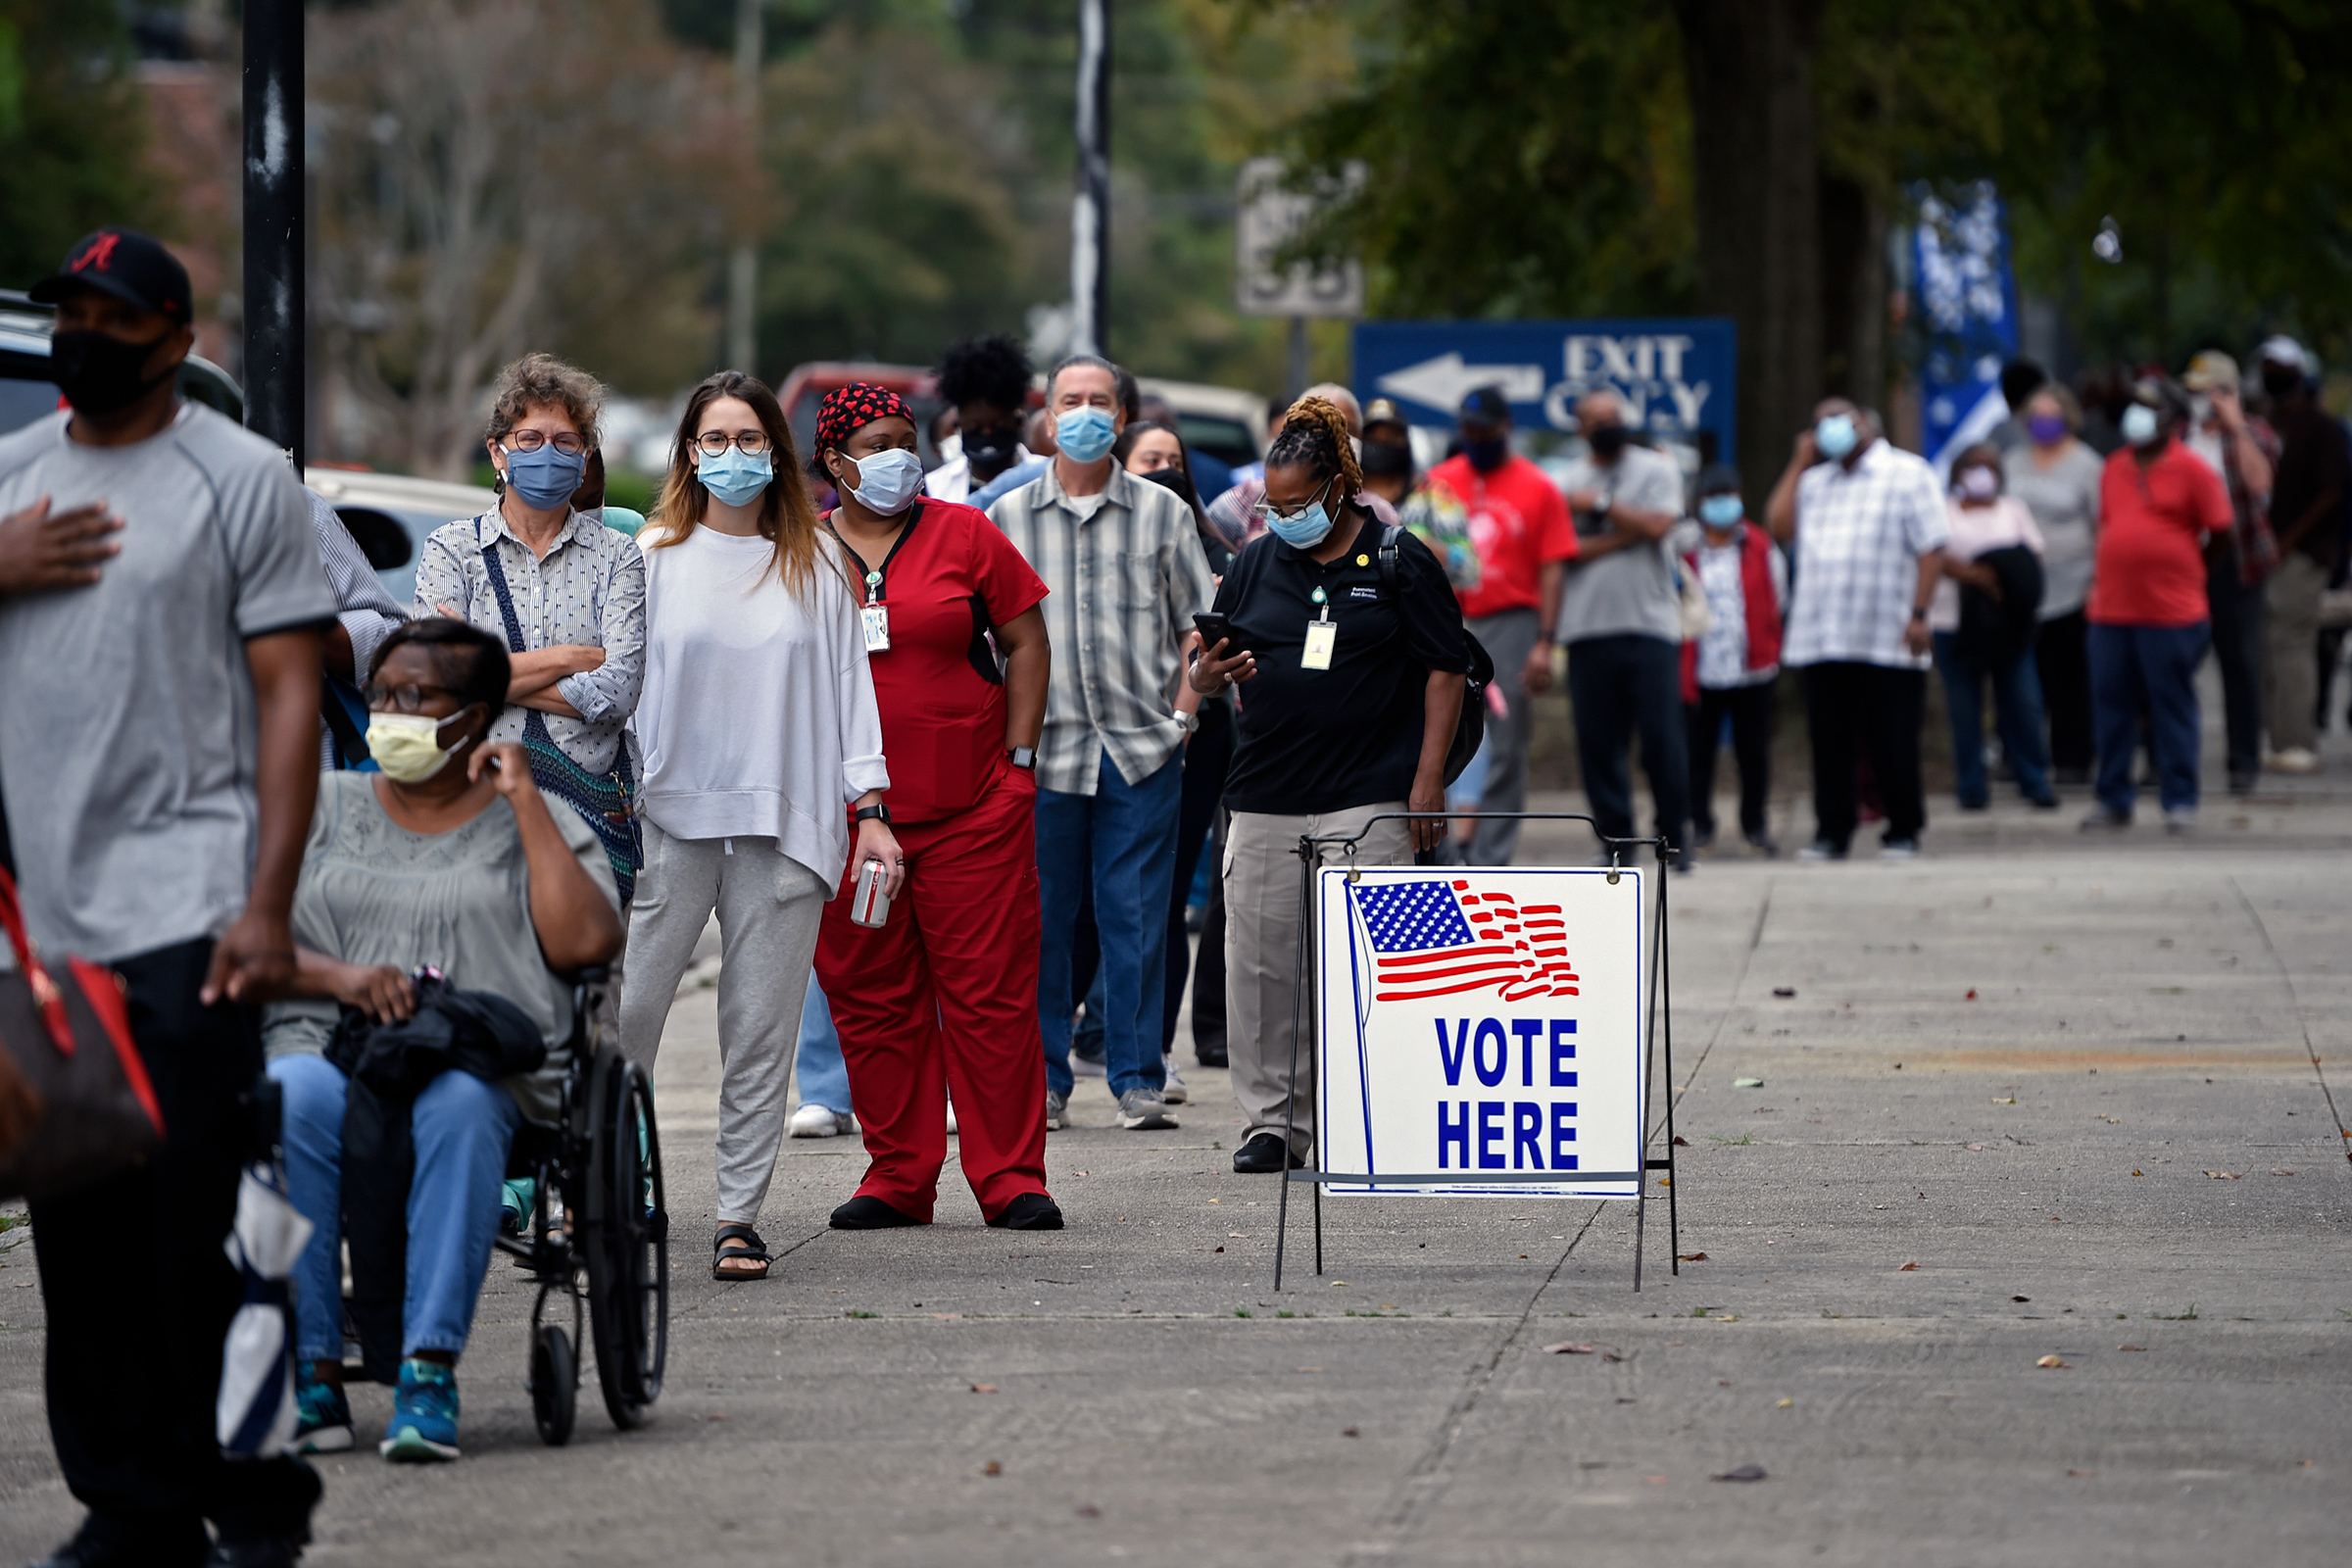 People wait in line for early voting at the Bell Auditorium in Augusta, Ga on Oct. 12, 2020.